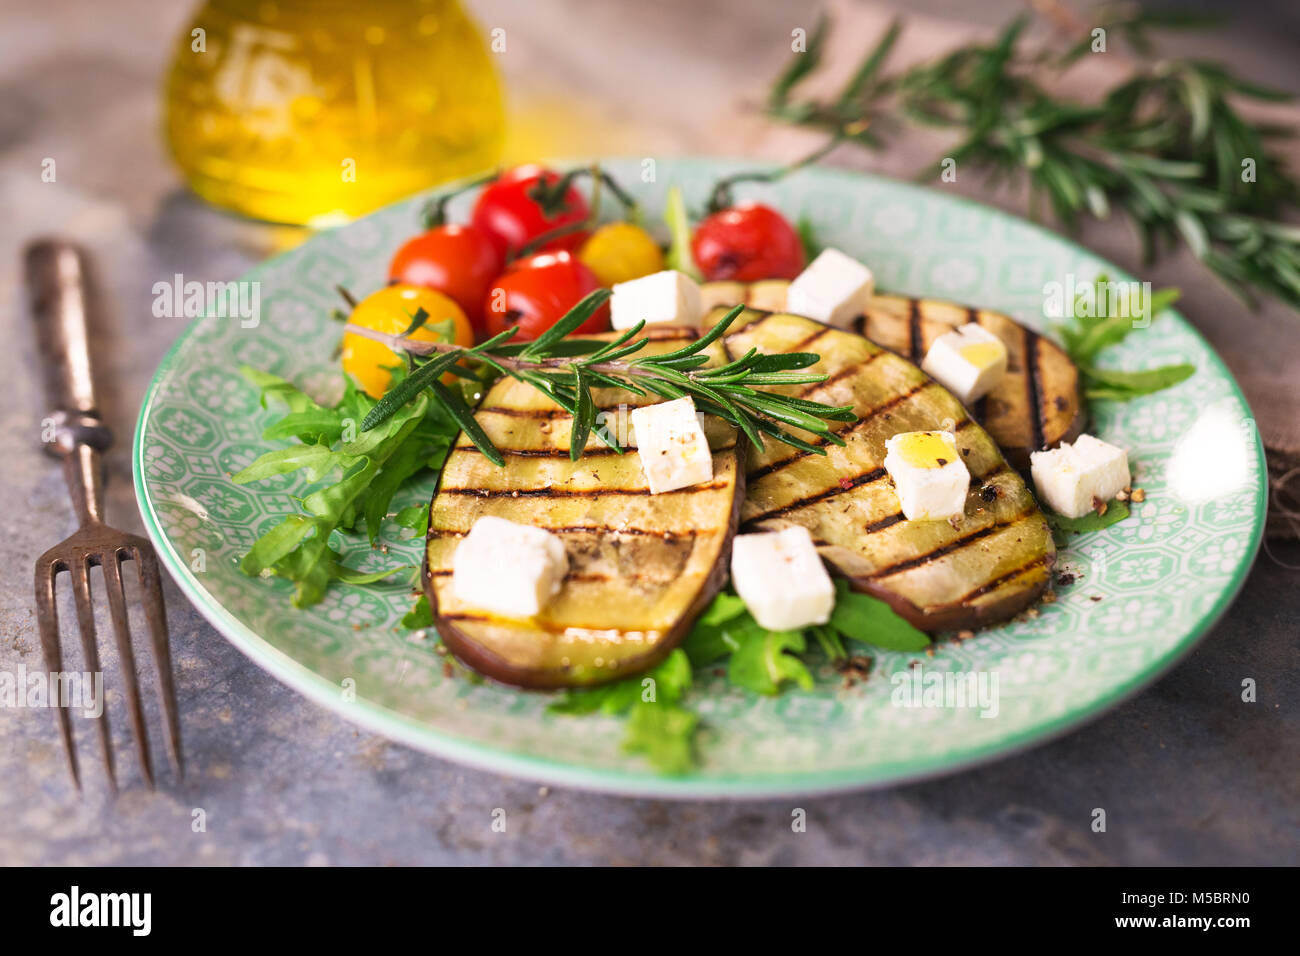 Griled eggplant with feta chese - Stock Image